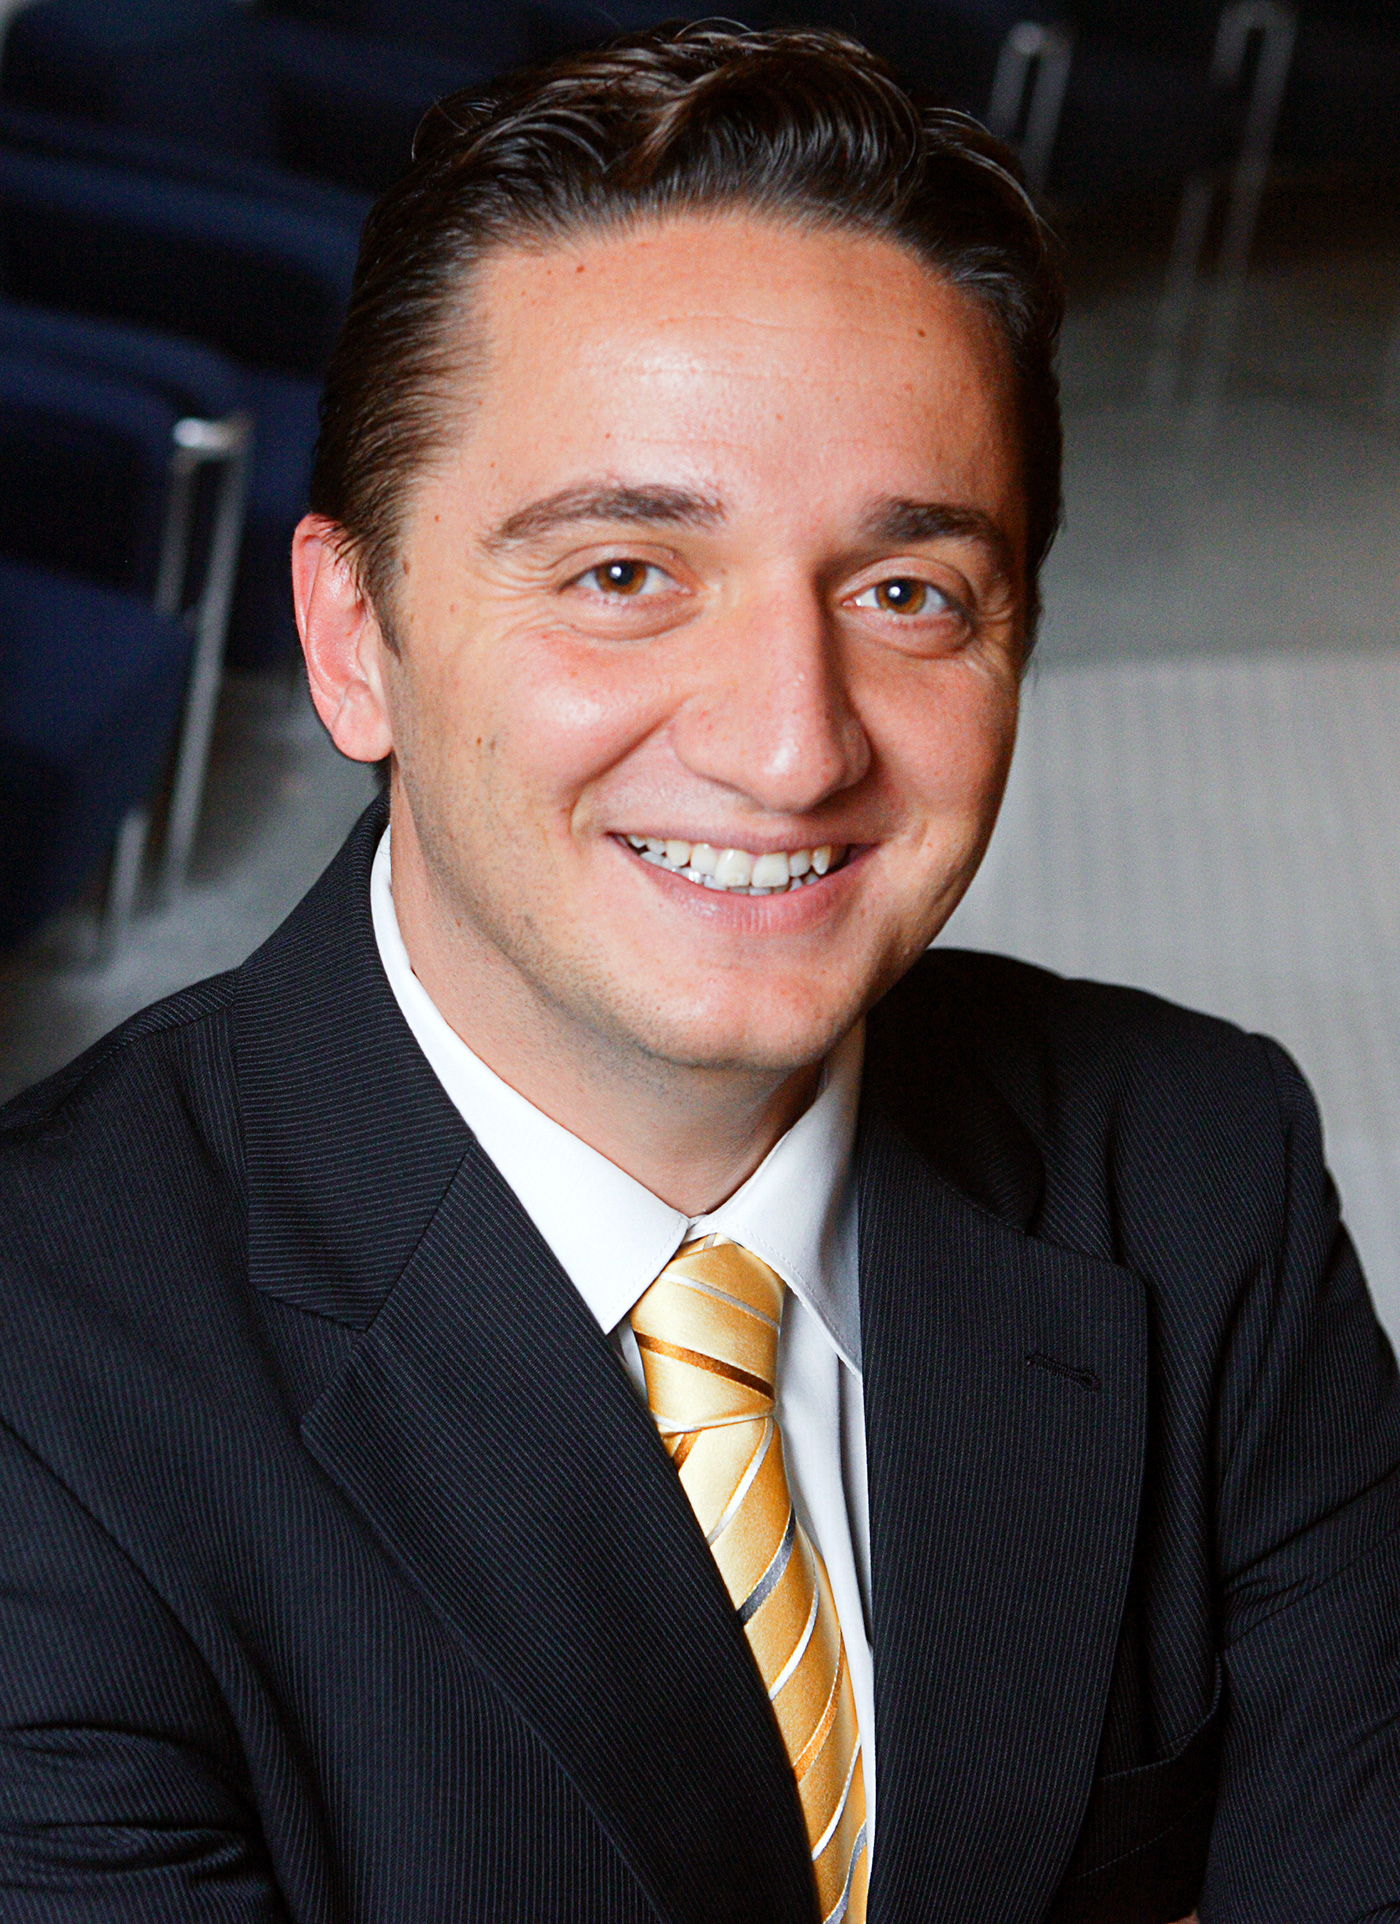 M. Berk Talay is an Associate Professor in the Manning School of Business - Marketing Entrepreneurship and Innovation Department at UMass Lowell.